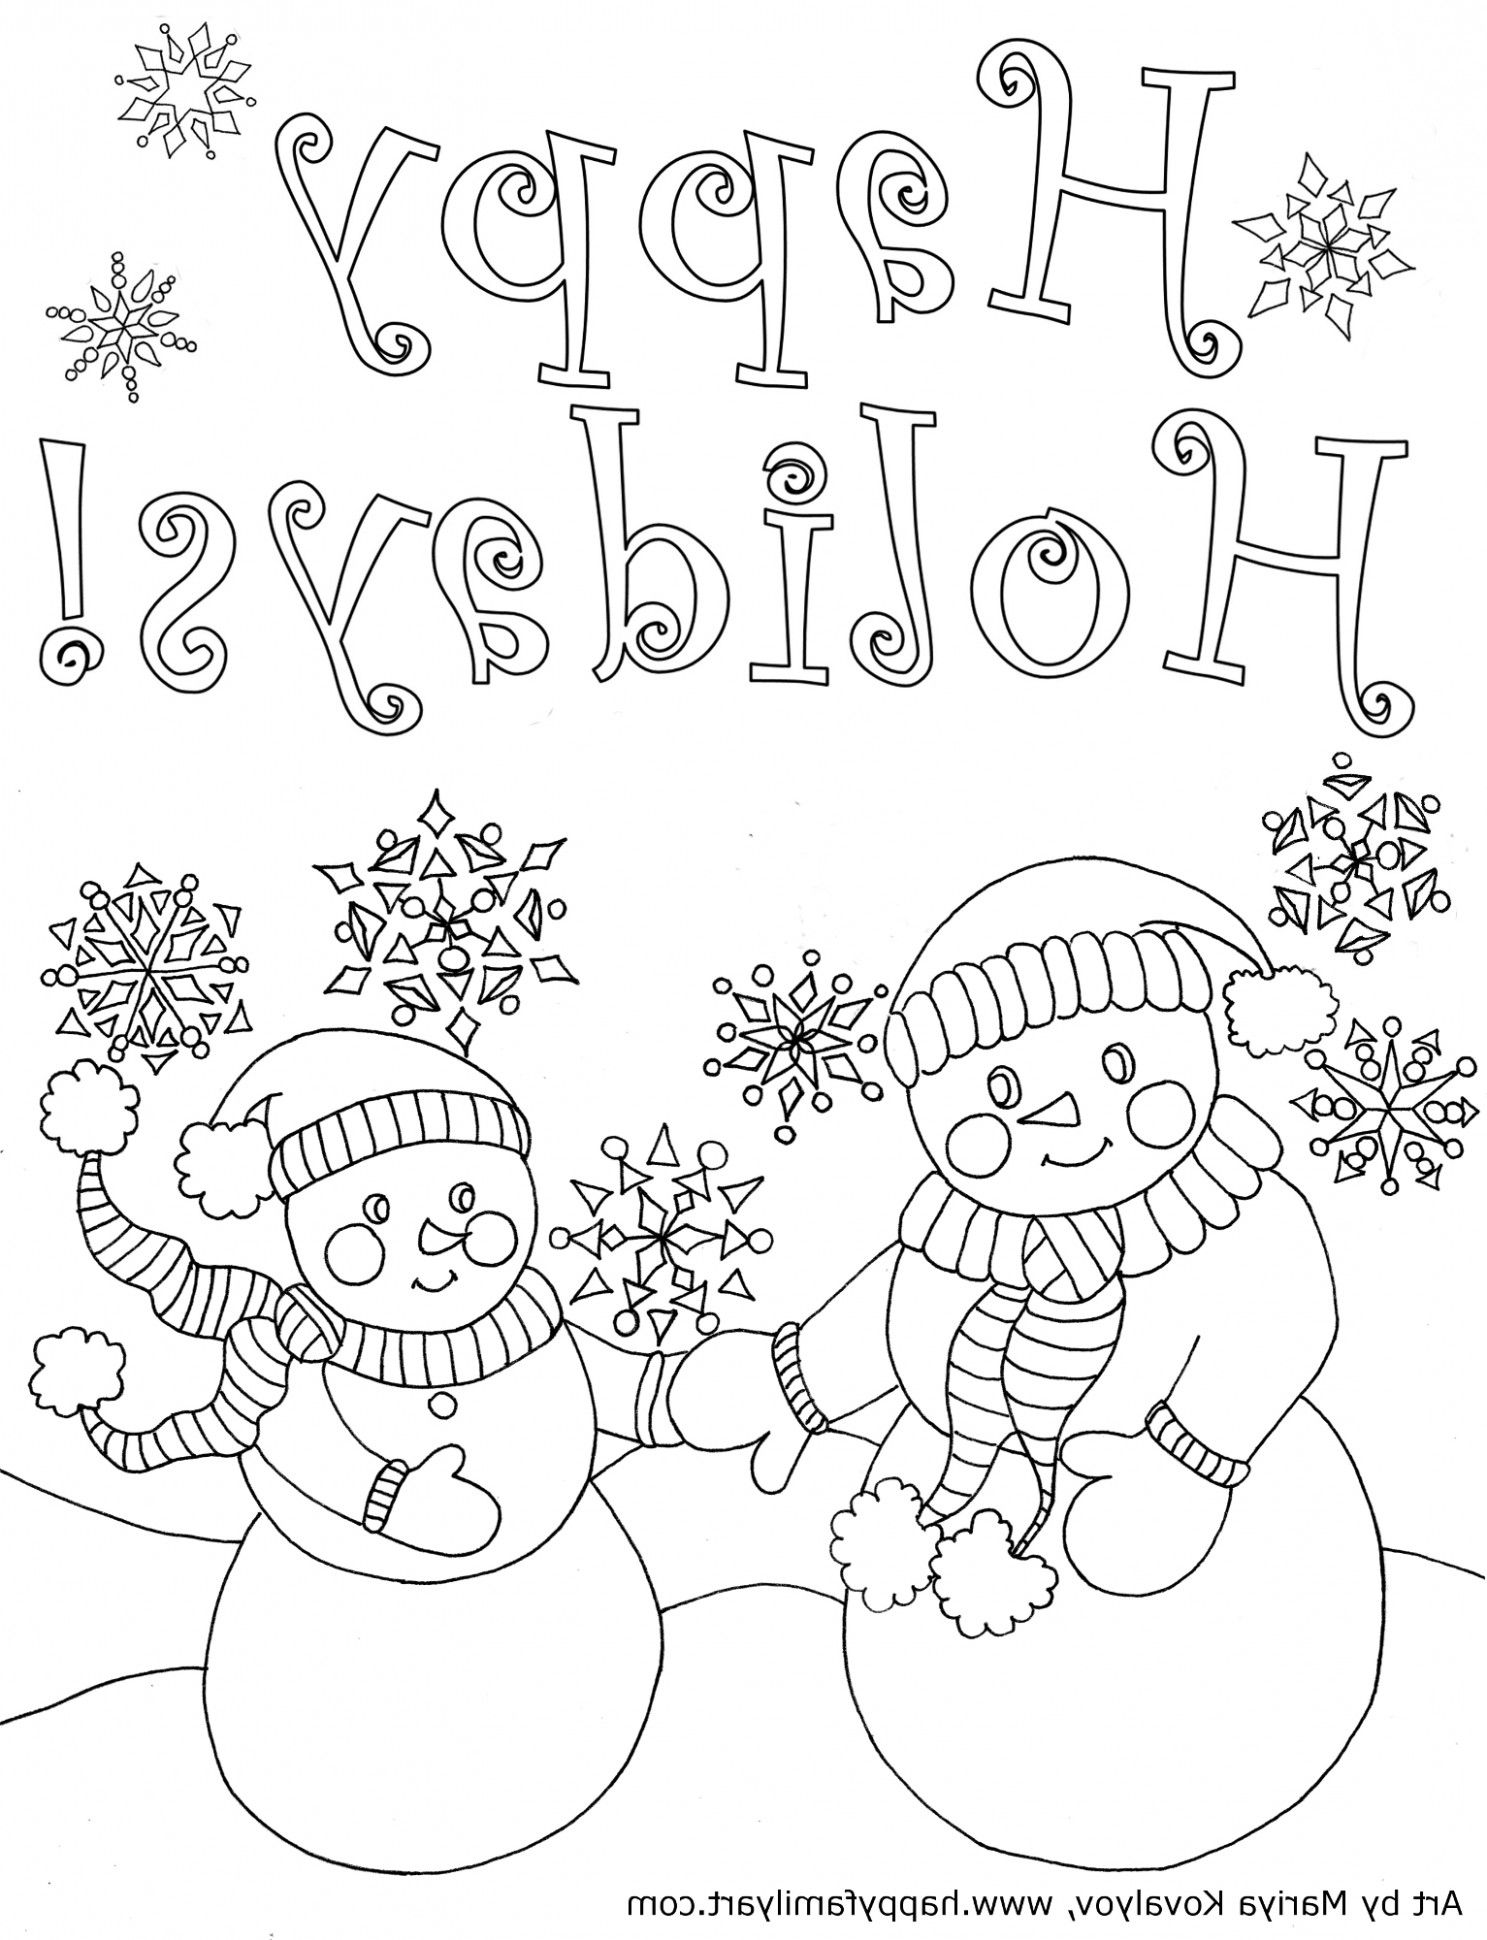 The Modern Rules Of Coloring Holiday Pages Coloring Cool Coloring Pages Printable Christmas Coloring Pages Christmas Coloring Cards [ 1940 x 1487 Pixel ]